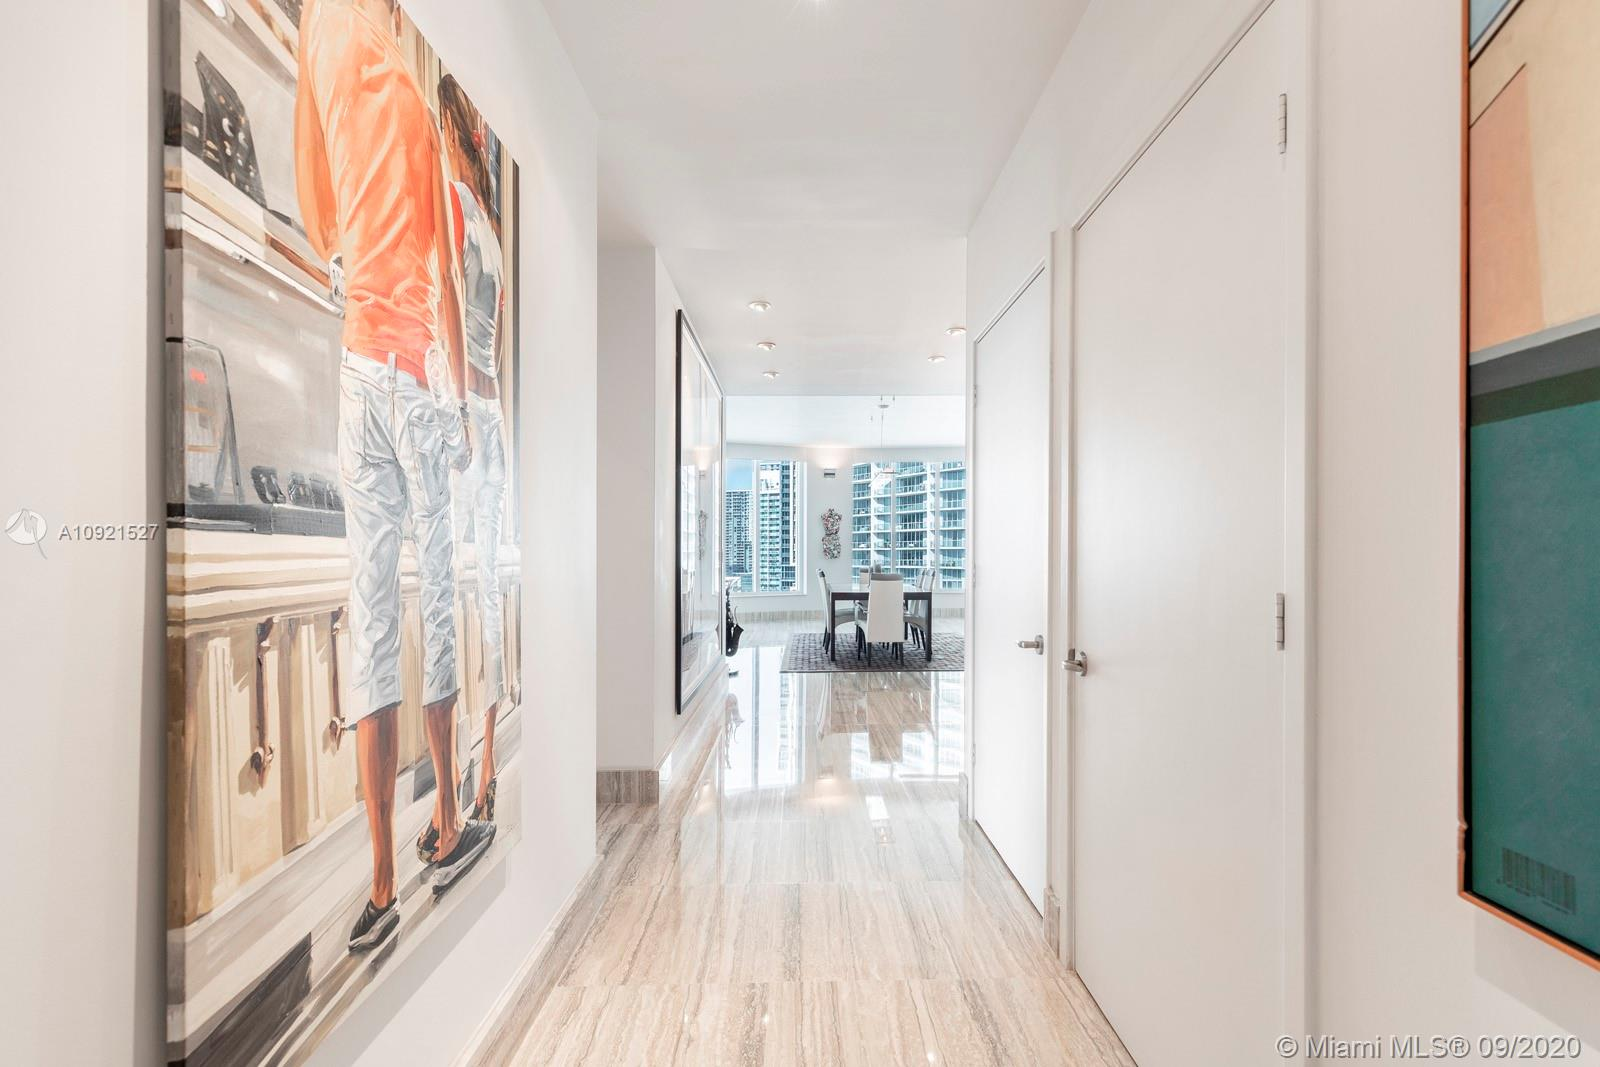 First time on the market for sale.  Located in luxury building Carbonell on Brickell Key this beautifully furnished unit completely upgraded, features 10 ft. ceilings,  3 bedrooms, 3. 5 bathrooms, marble floors throughout all common areas and wood floors in all bedrooms. Spectacular views of the City skyline, Port of Miami, Miami River and Bay from this most sought after corner unit Carbonell.  Carbonell offers five star amenities on this exclusive island.  Two parking spaces included.